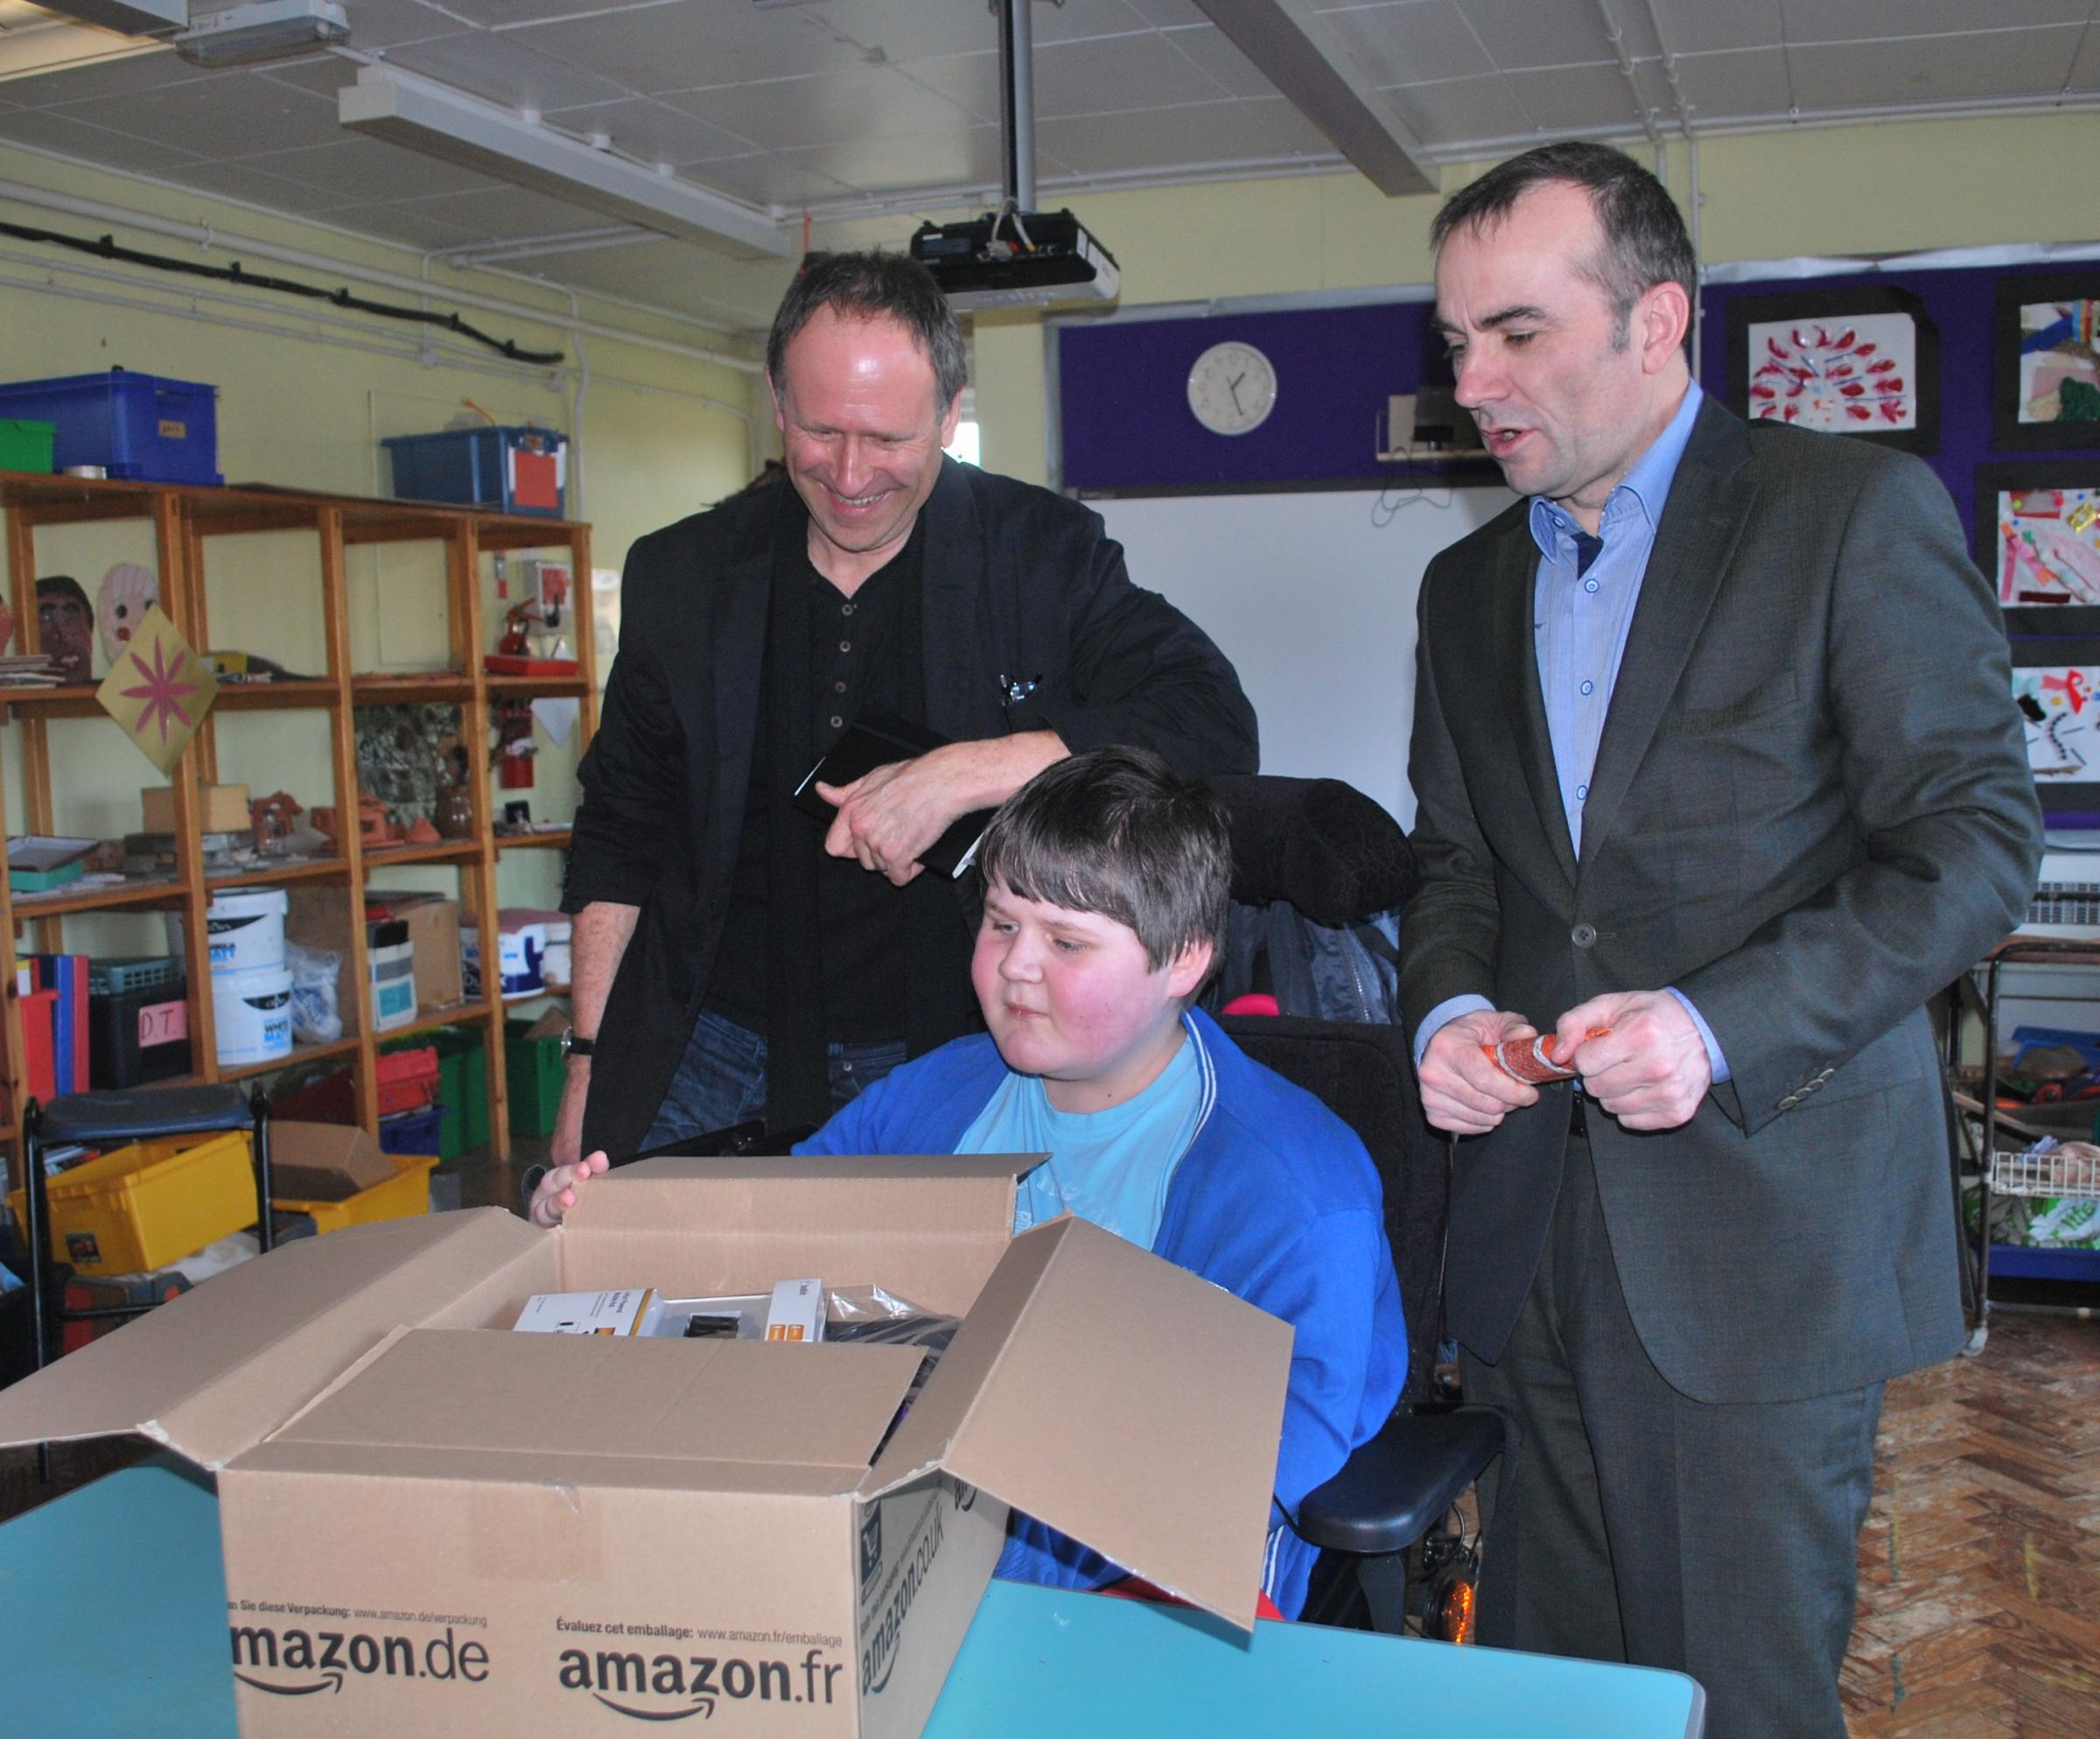 LAPTOP: Ysgol Erw'r Delyn pupil Lewis Gasson was given a laptop